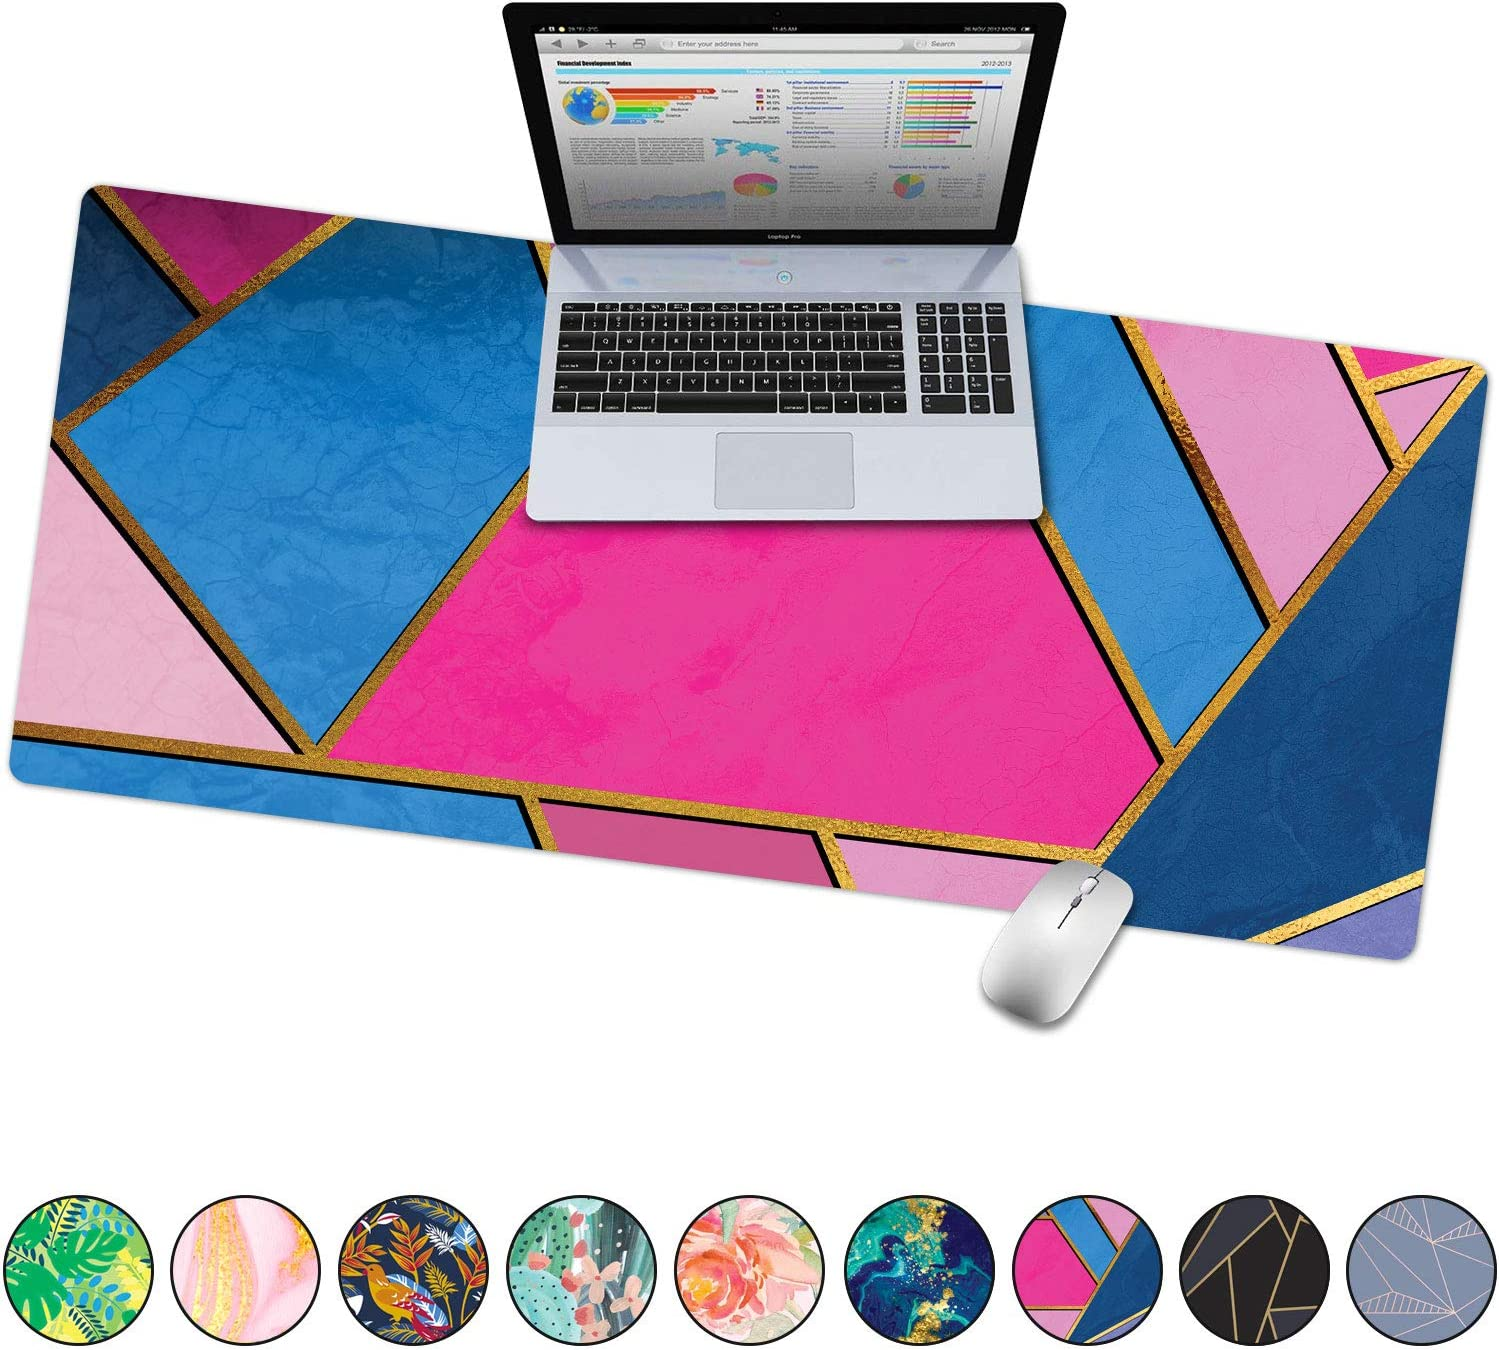 """French Koko Large Mouse Pad, Desk Mat, Keyboard Pad, Desktop Home Office School Cute Decor Big Extended Laptop Protector Computer Accessories Pretty Mousepad XL 31""""x15""""(Geometric Pink and Blue)"""